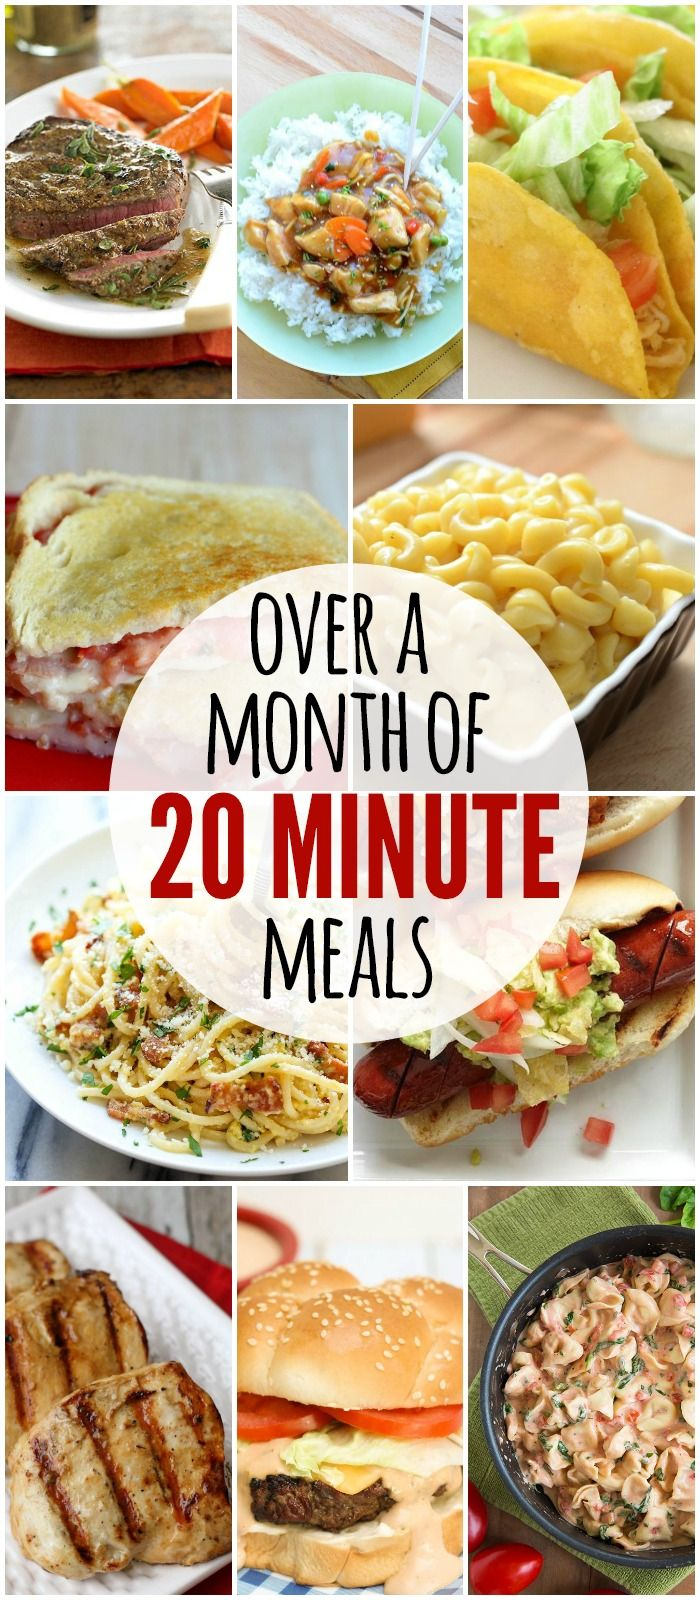 Over A Month Worth Of Meals That Only Take 20 Minutes Or